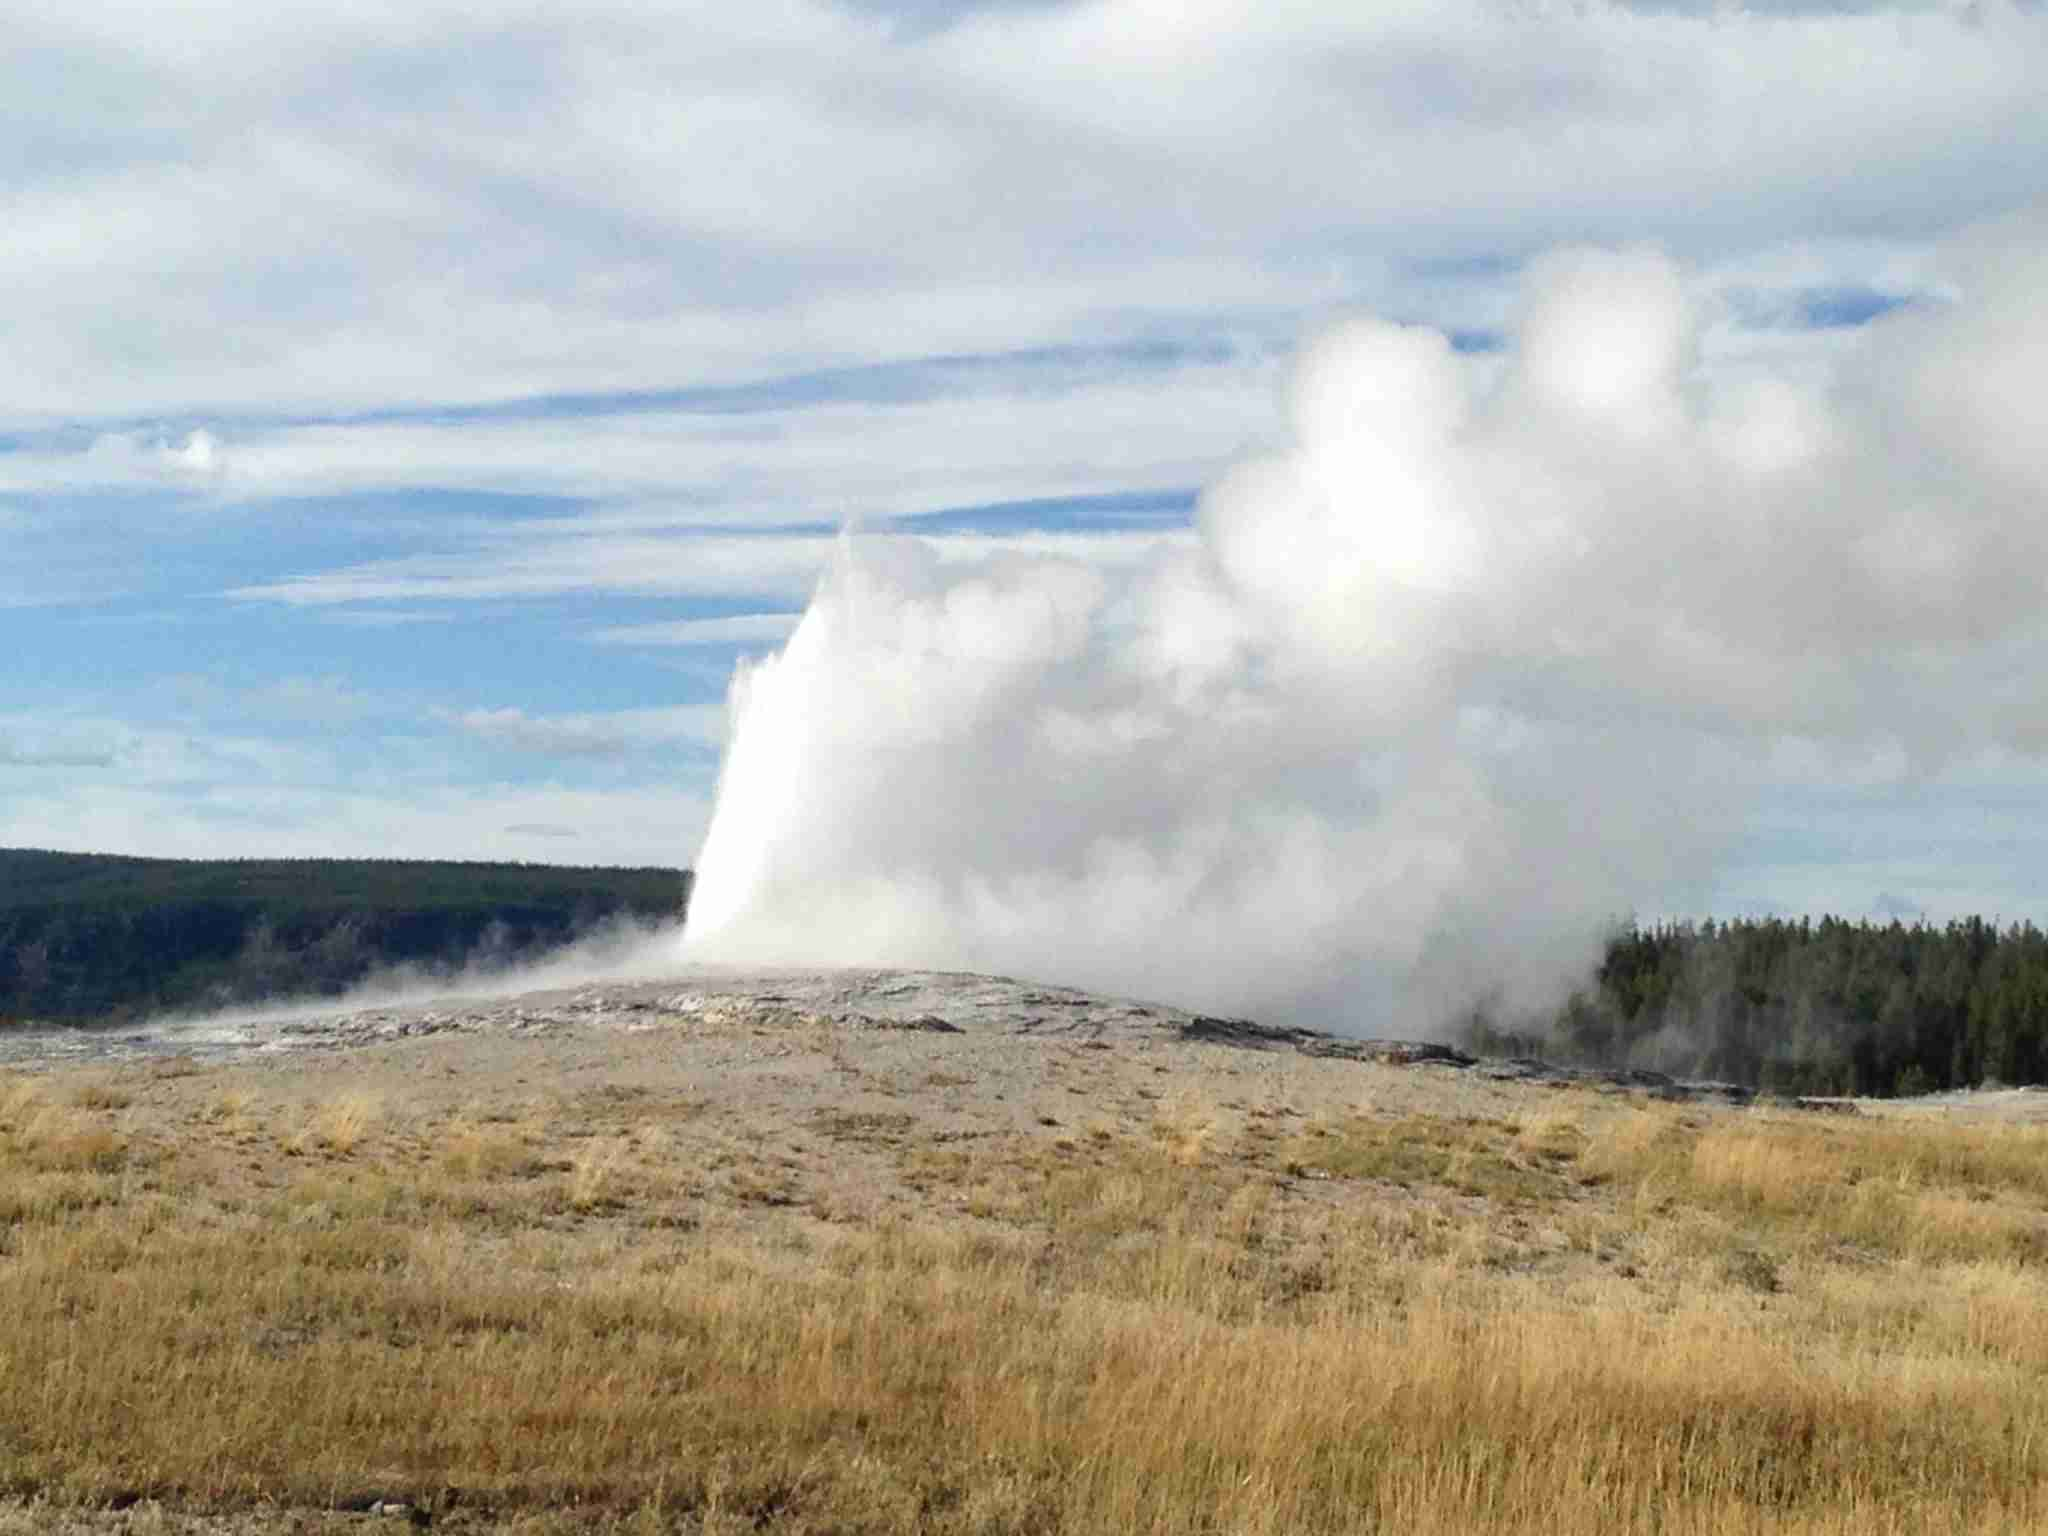 Yellowstone National Park September 2015. (Photo by Clint Henderson/The Points Guy)